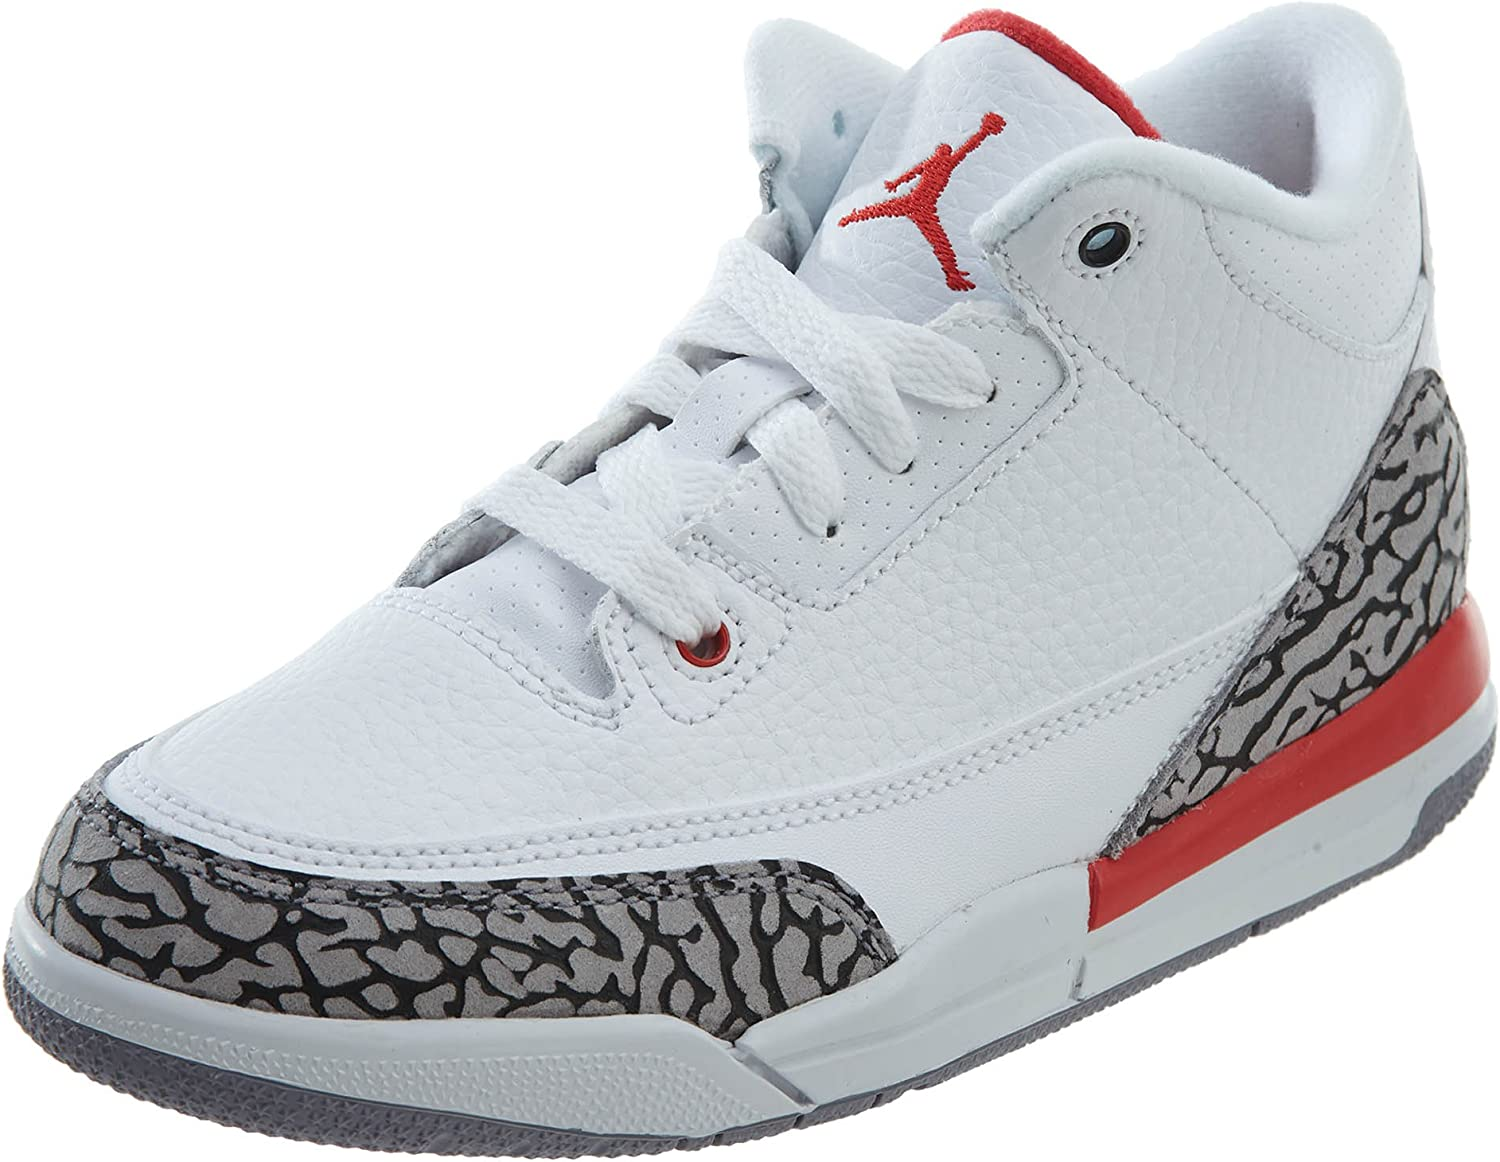 Sensible Todos Sin sentido  Amazon.com | Jordan 3 Retro Katrina Little Kids' Shoes White/Fire  Red-Cement Grey 429487-116 (11.5 M US) | Basketball